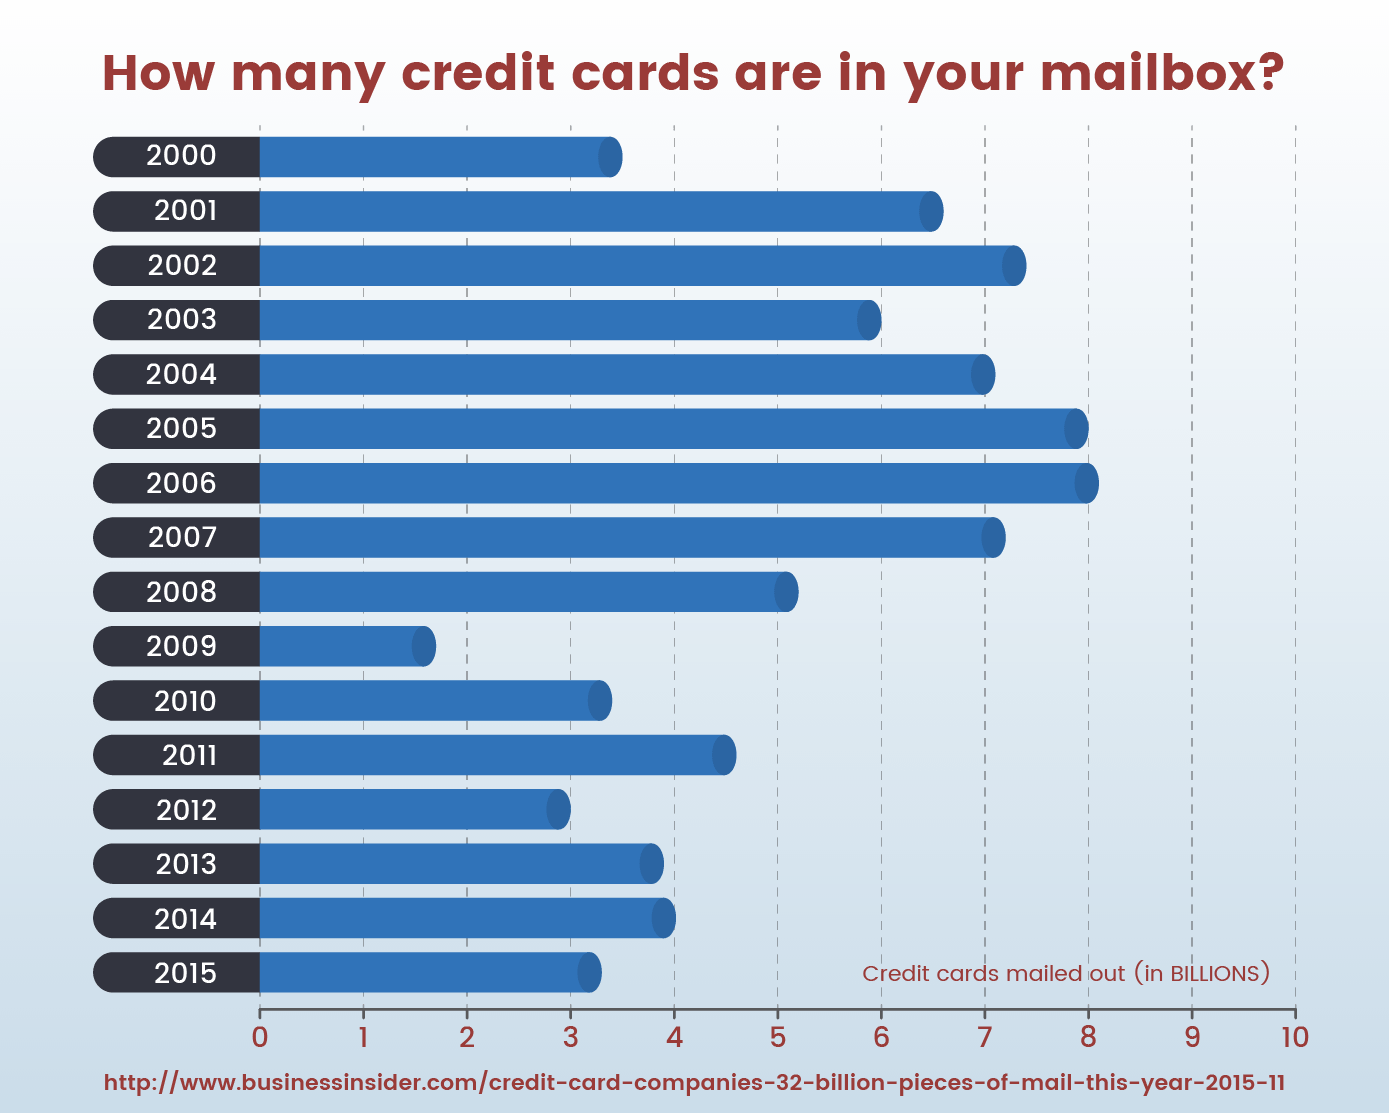 How many credit cards are in your mailbox?